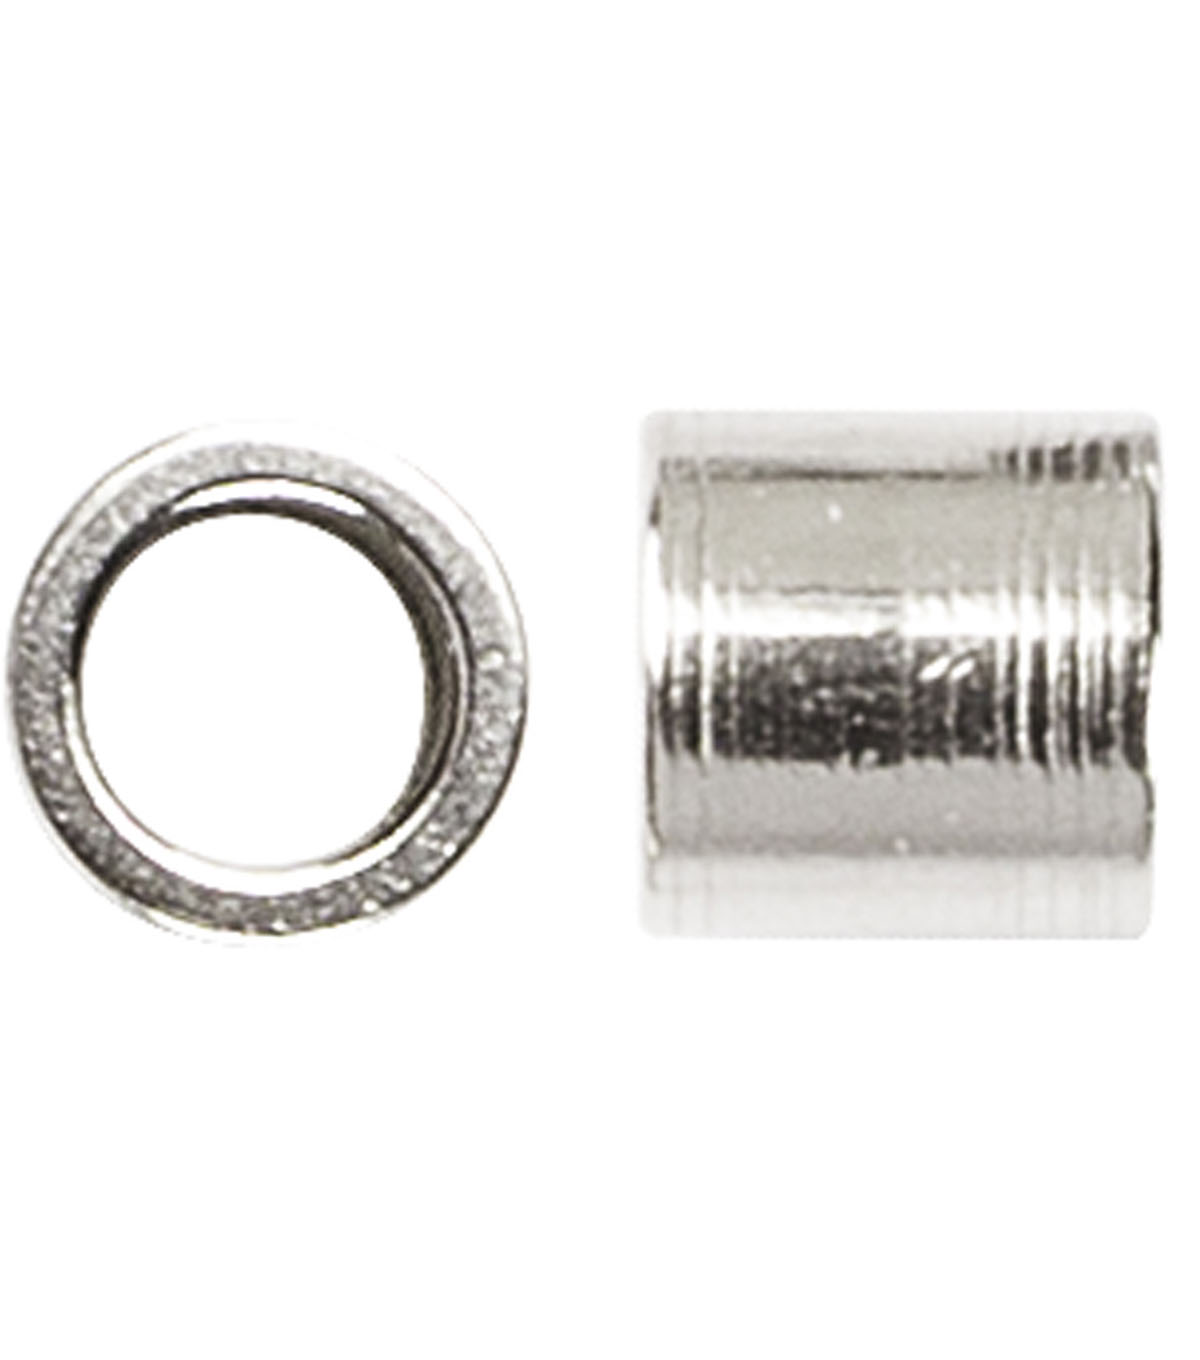 36 Piece Crimp Bead Stainless Steel